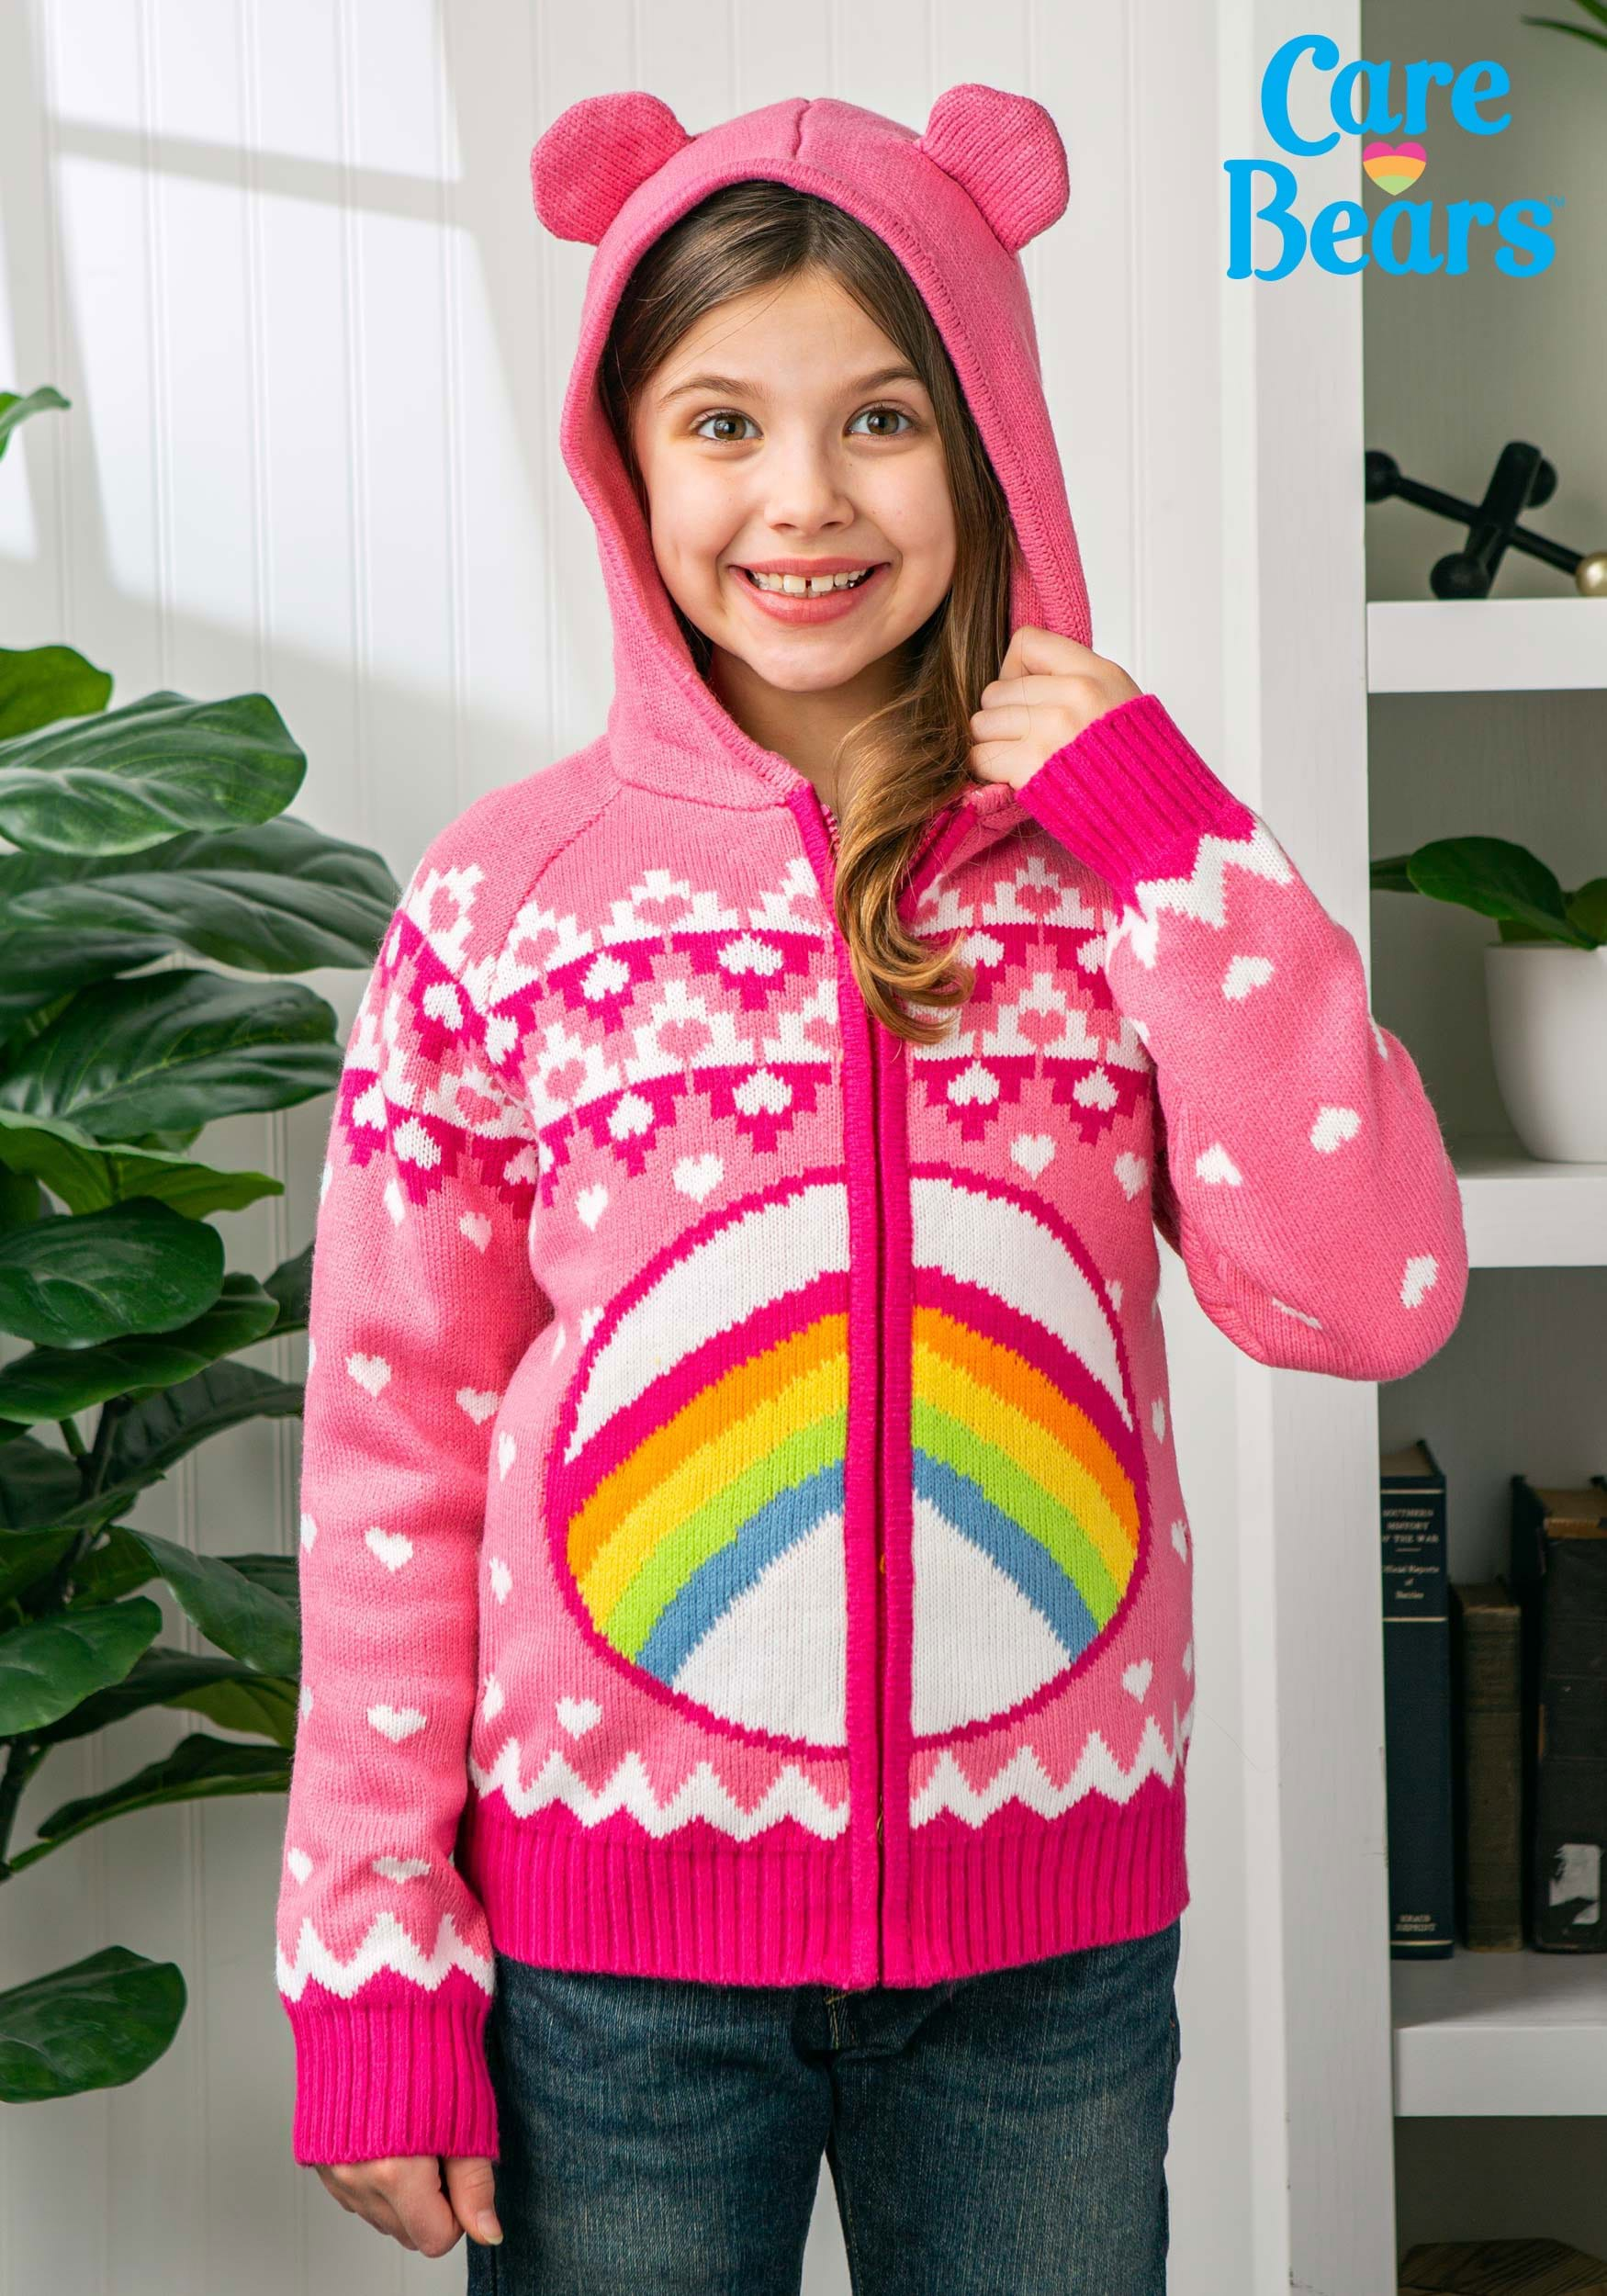 $19.99 (reg $45) Child Cheer Bear Care Bears Zip Up Knit Sweater